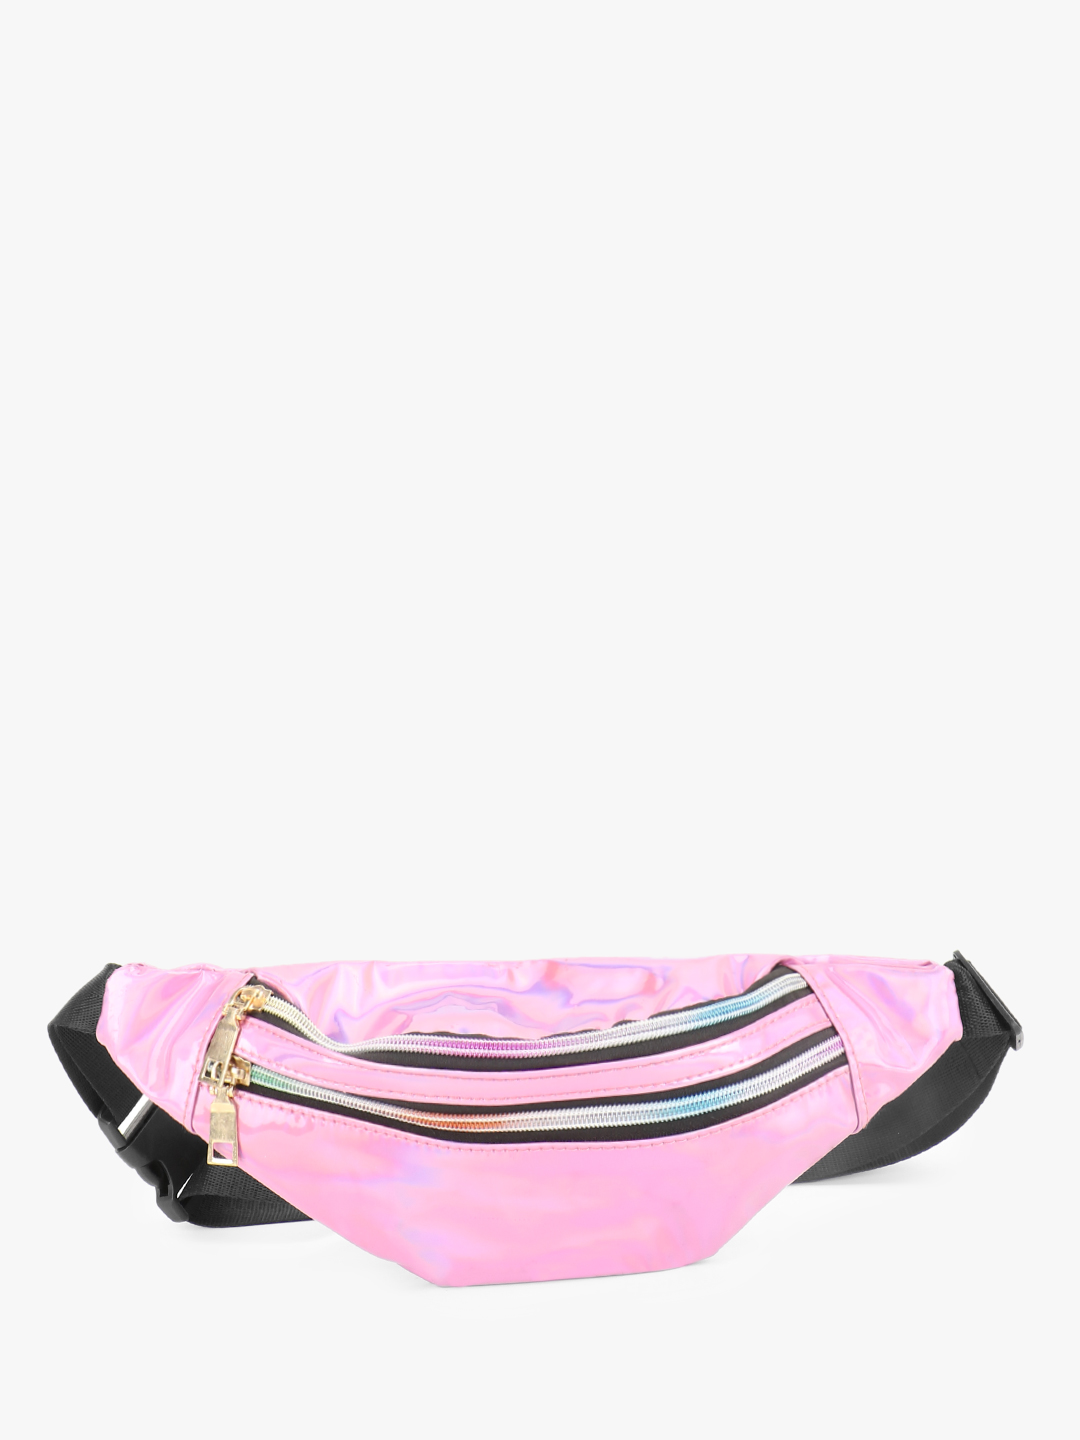 Origami Lily Pink Holographic Bum Bag 1